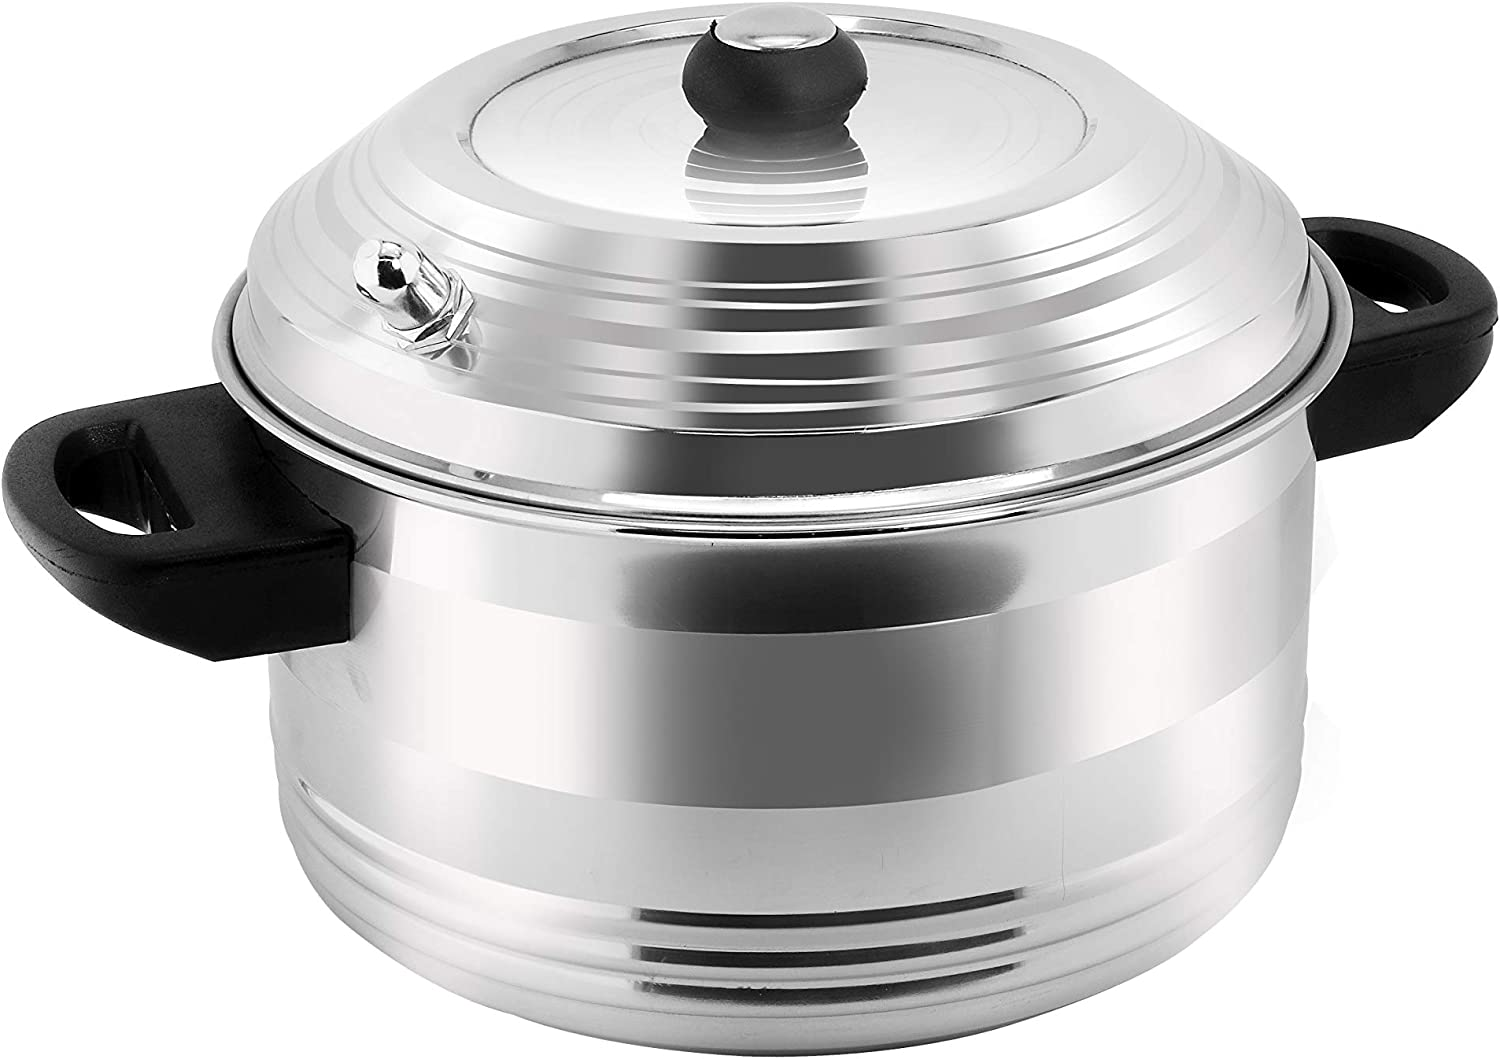 HOMEST Stainless Steel 4-Plates Idly Cooker, Induction & Gas Stove Compatible Idli Maker/Idli Cooker (4-Plates | 16 IDLI)